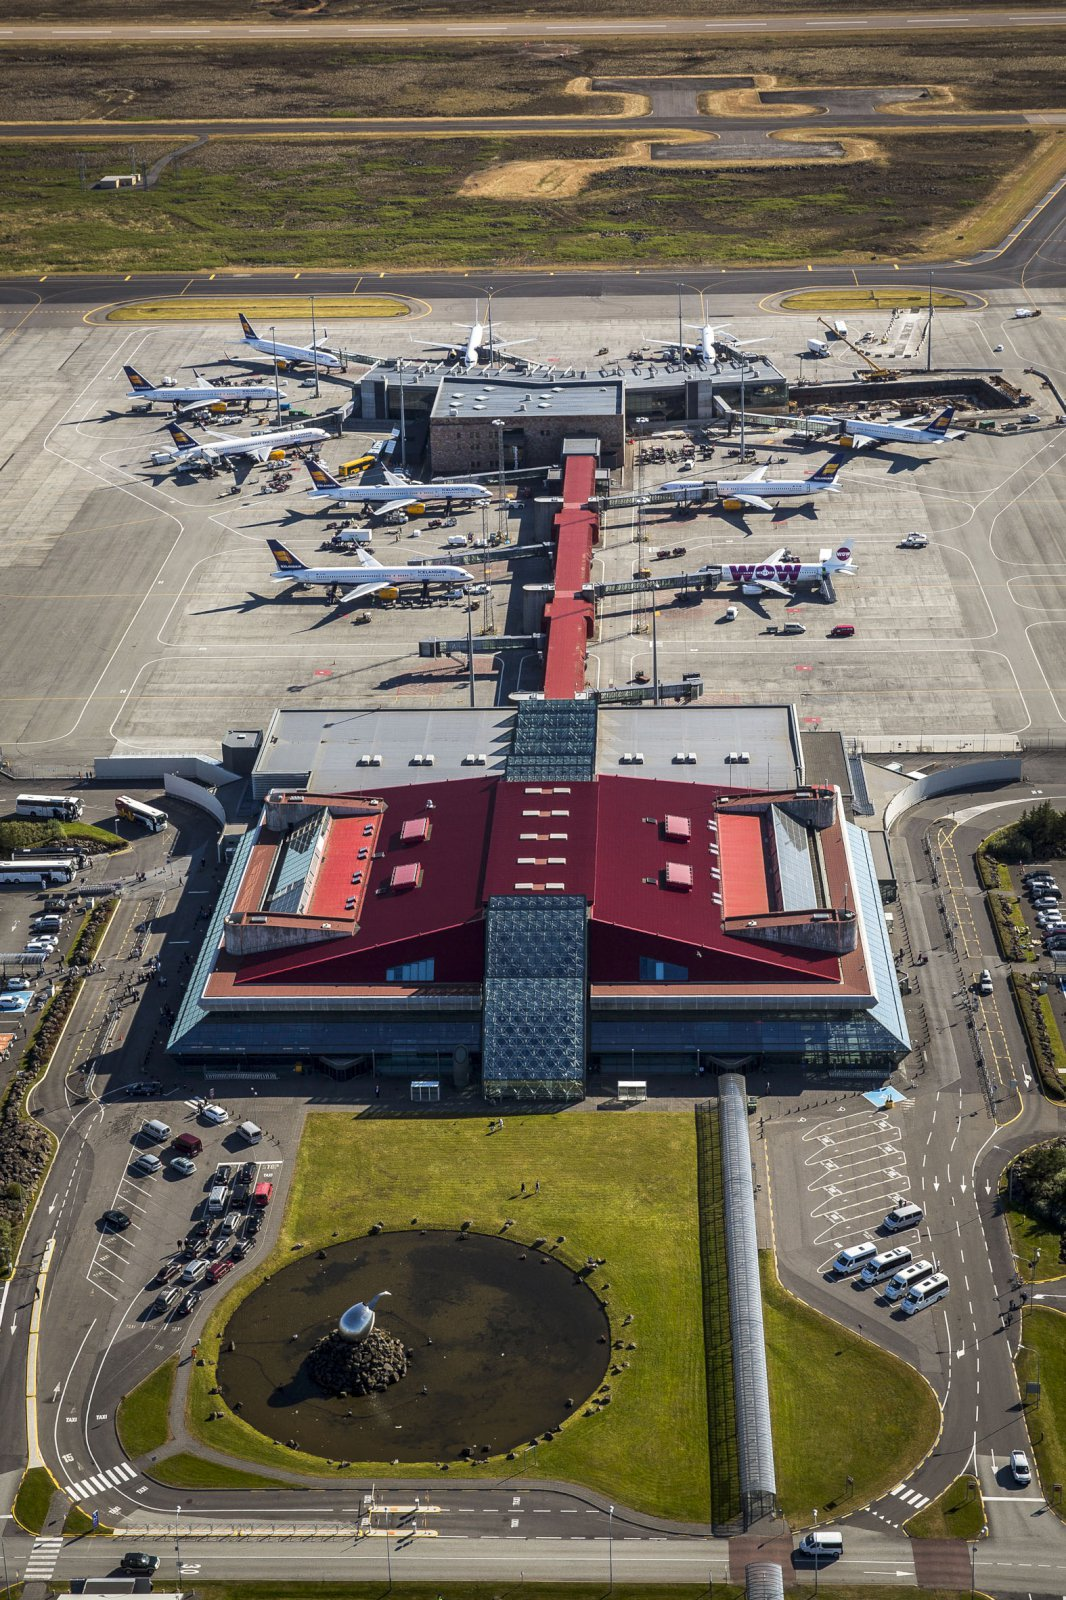 Traffic at Keflavik International Airport continues to rise